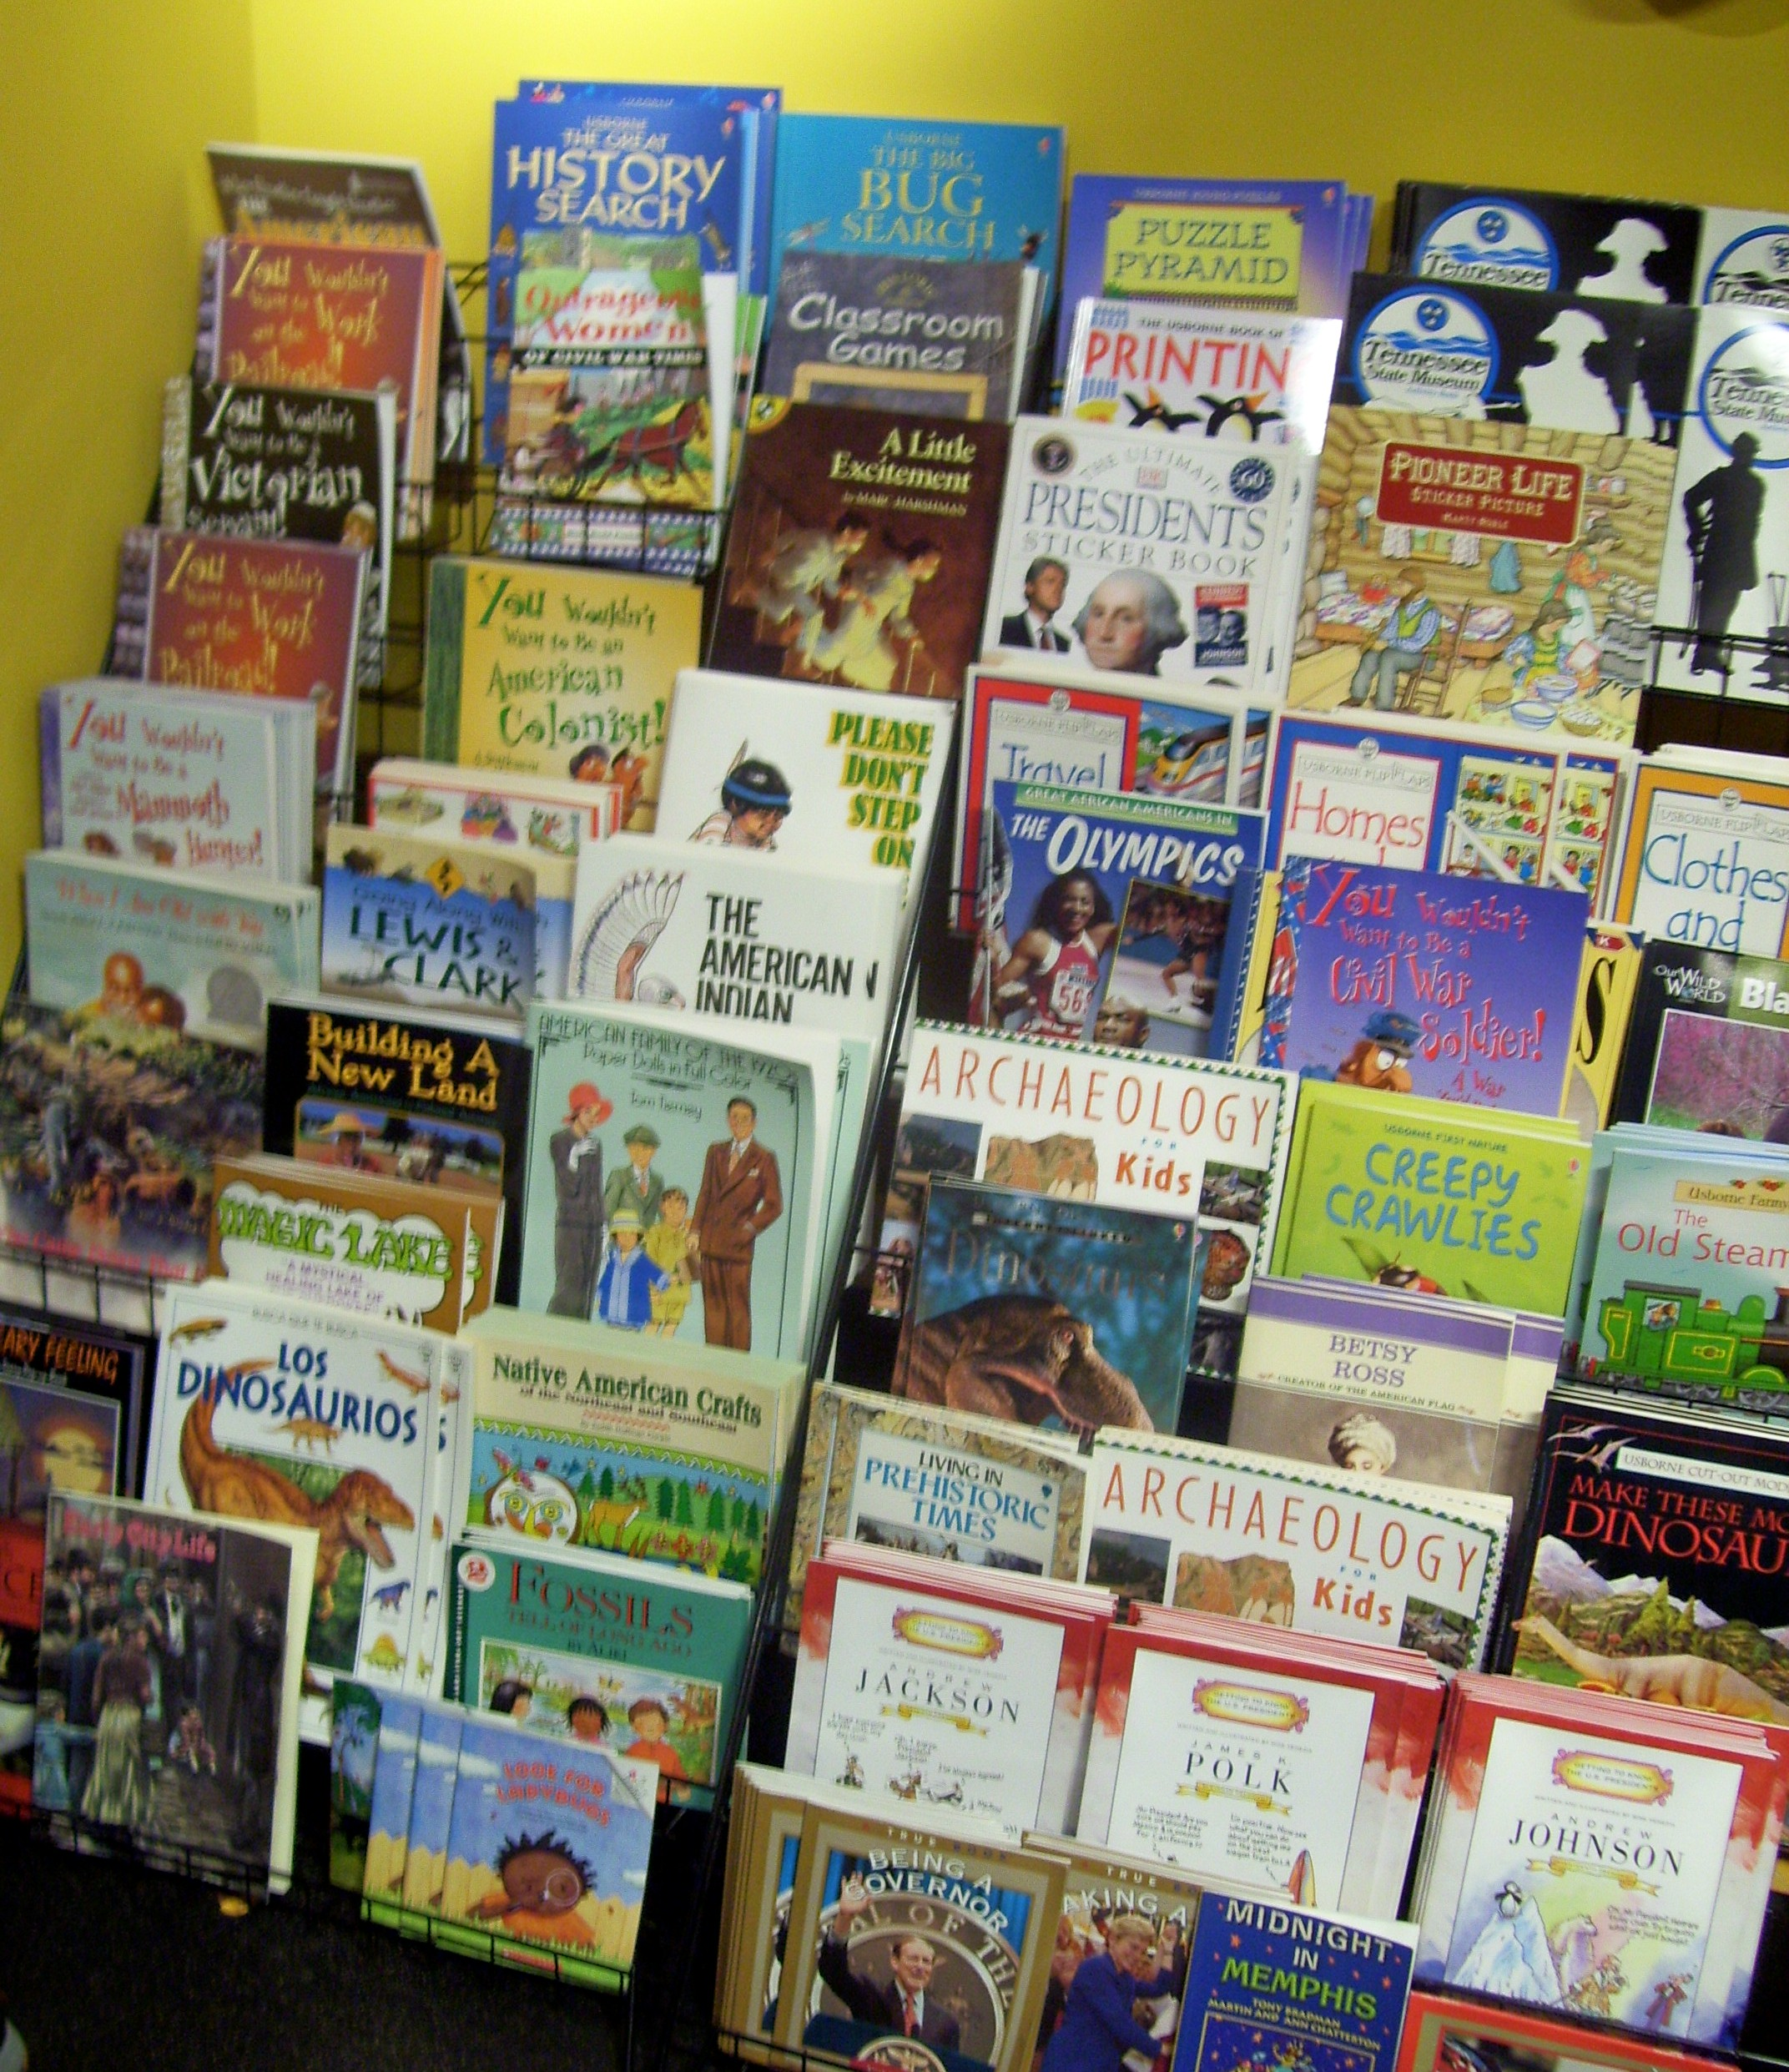 You can buy the best children's books about Tennessee at the Tennessee